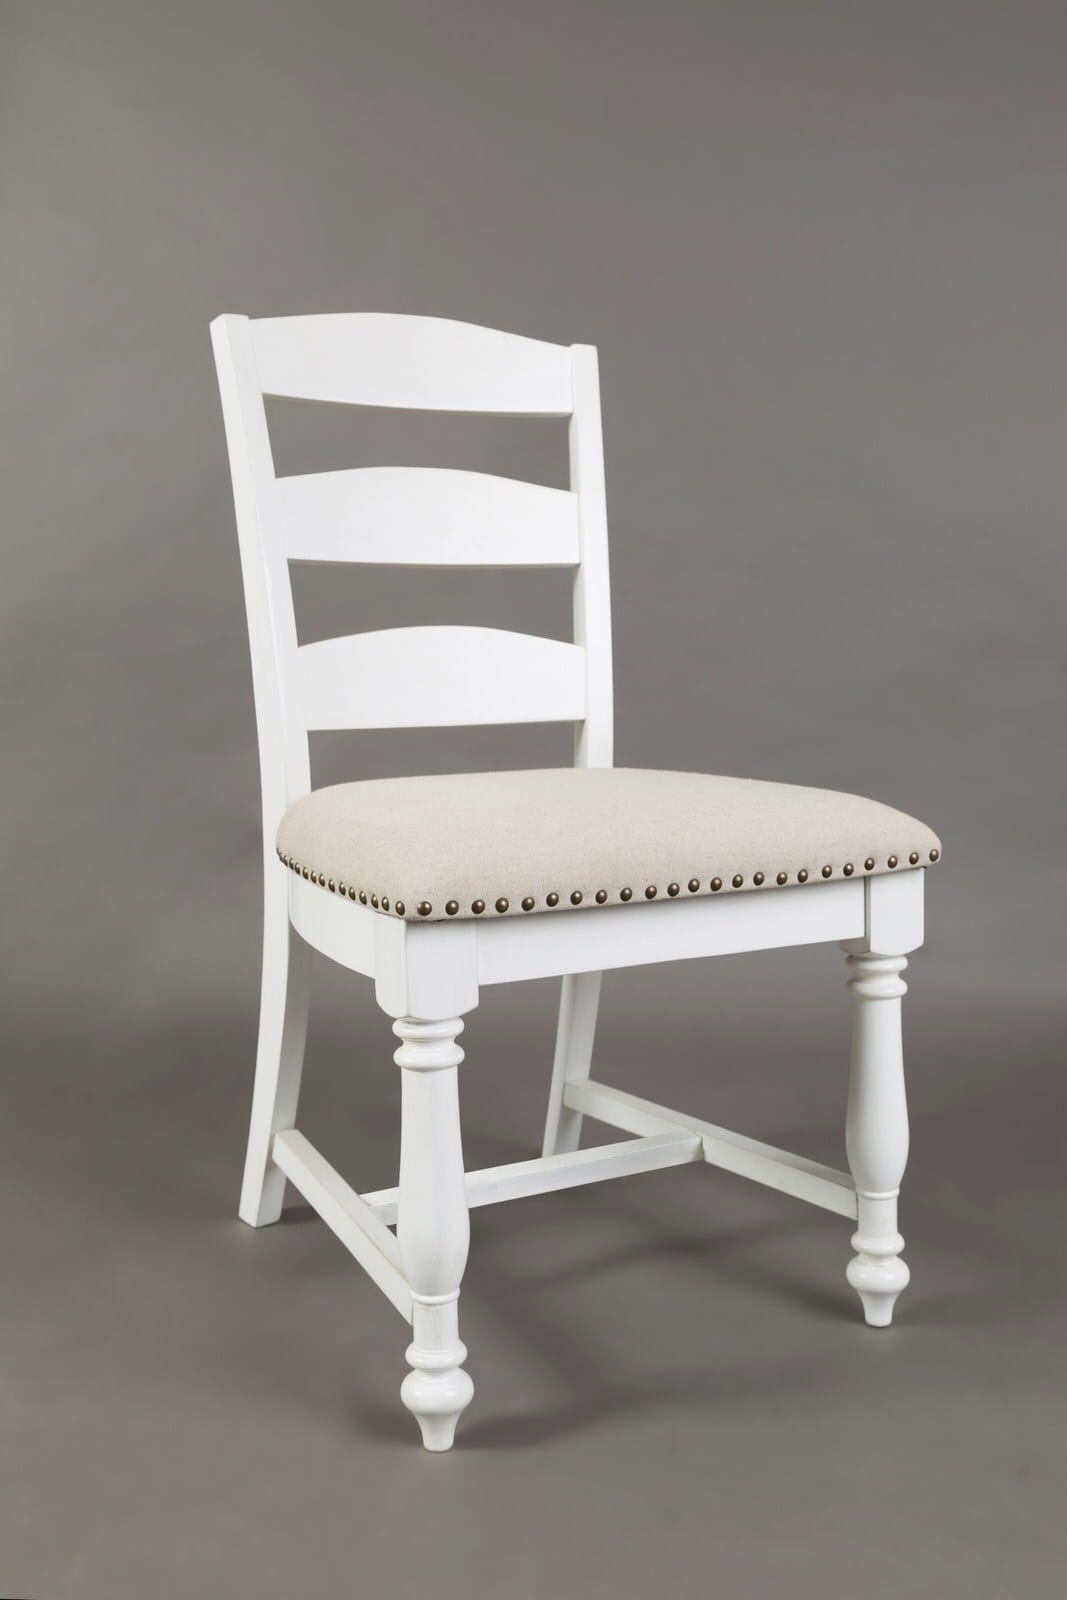 Castle Hill Antique White Ladder Back Dining Chair Set Of 2 By Jofran Furniture